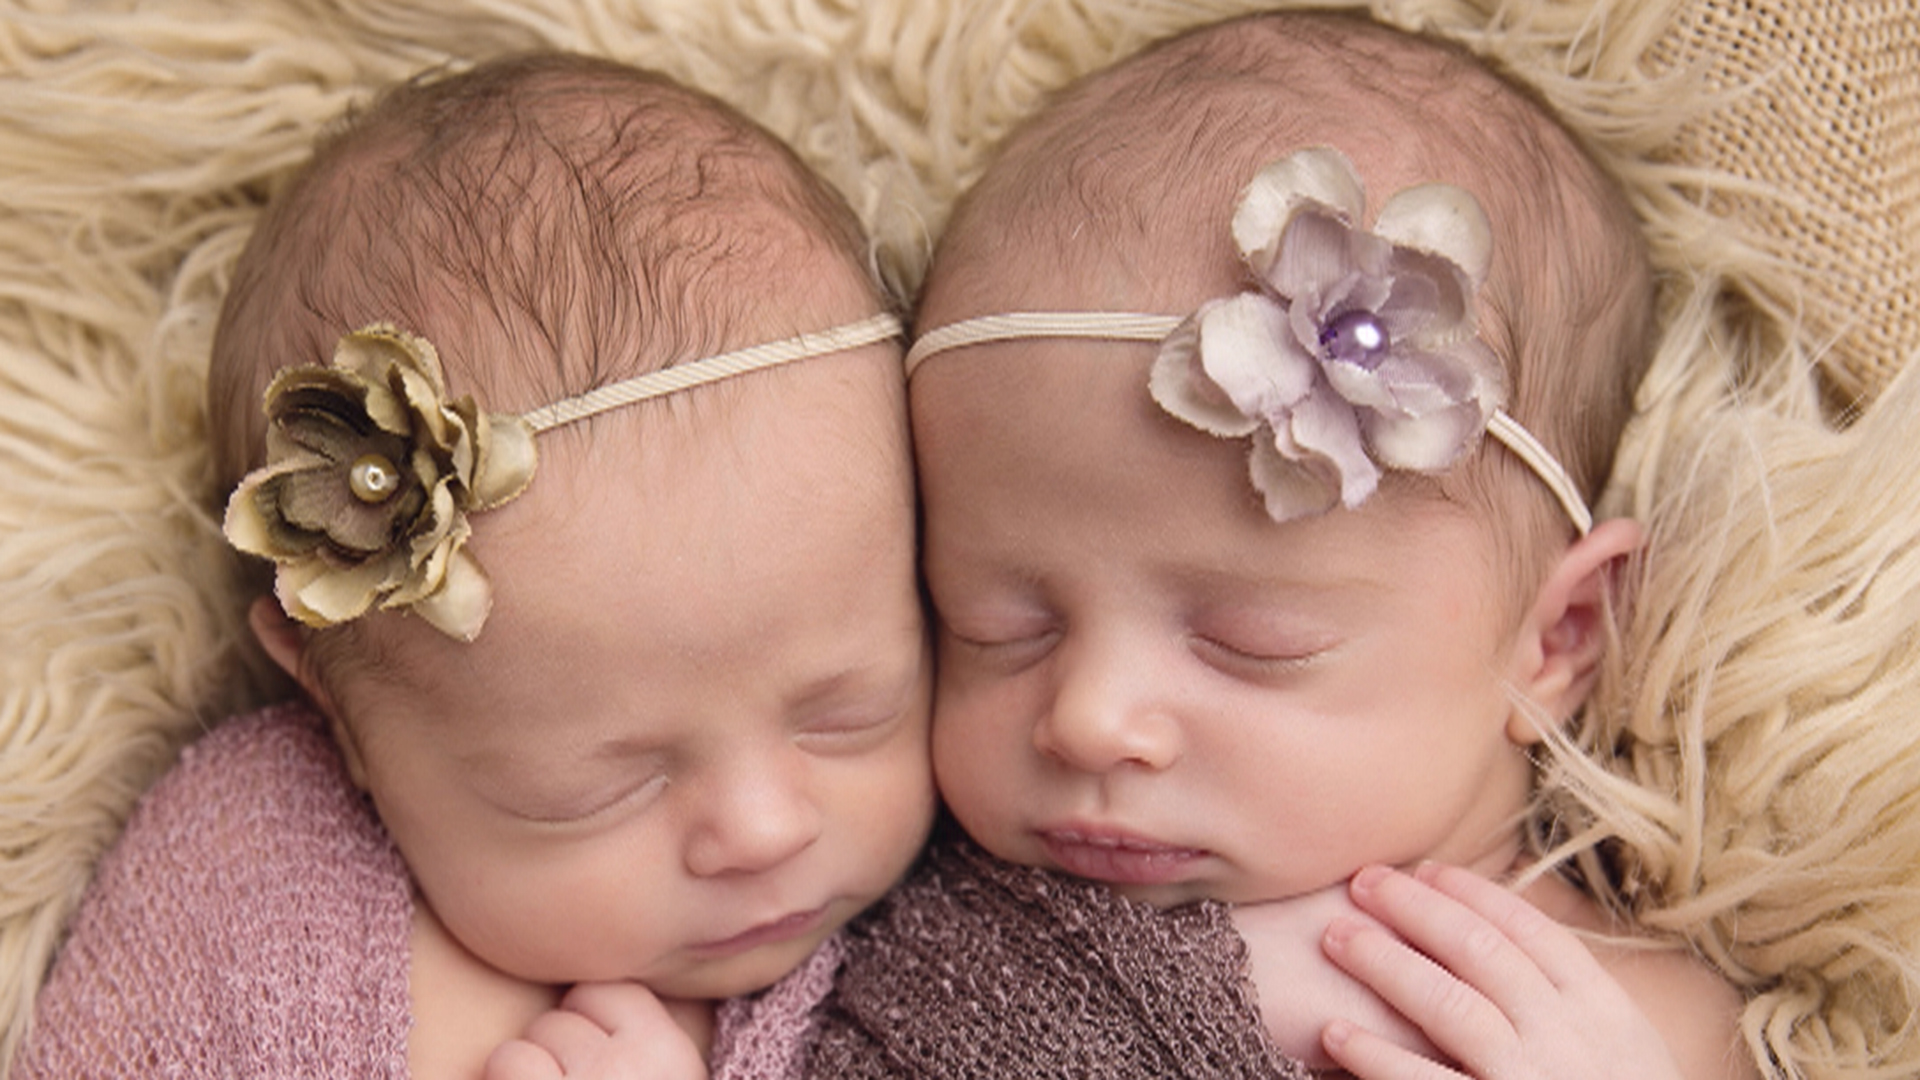 two cute! photographer takes adorable pics of newborn twins